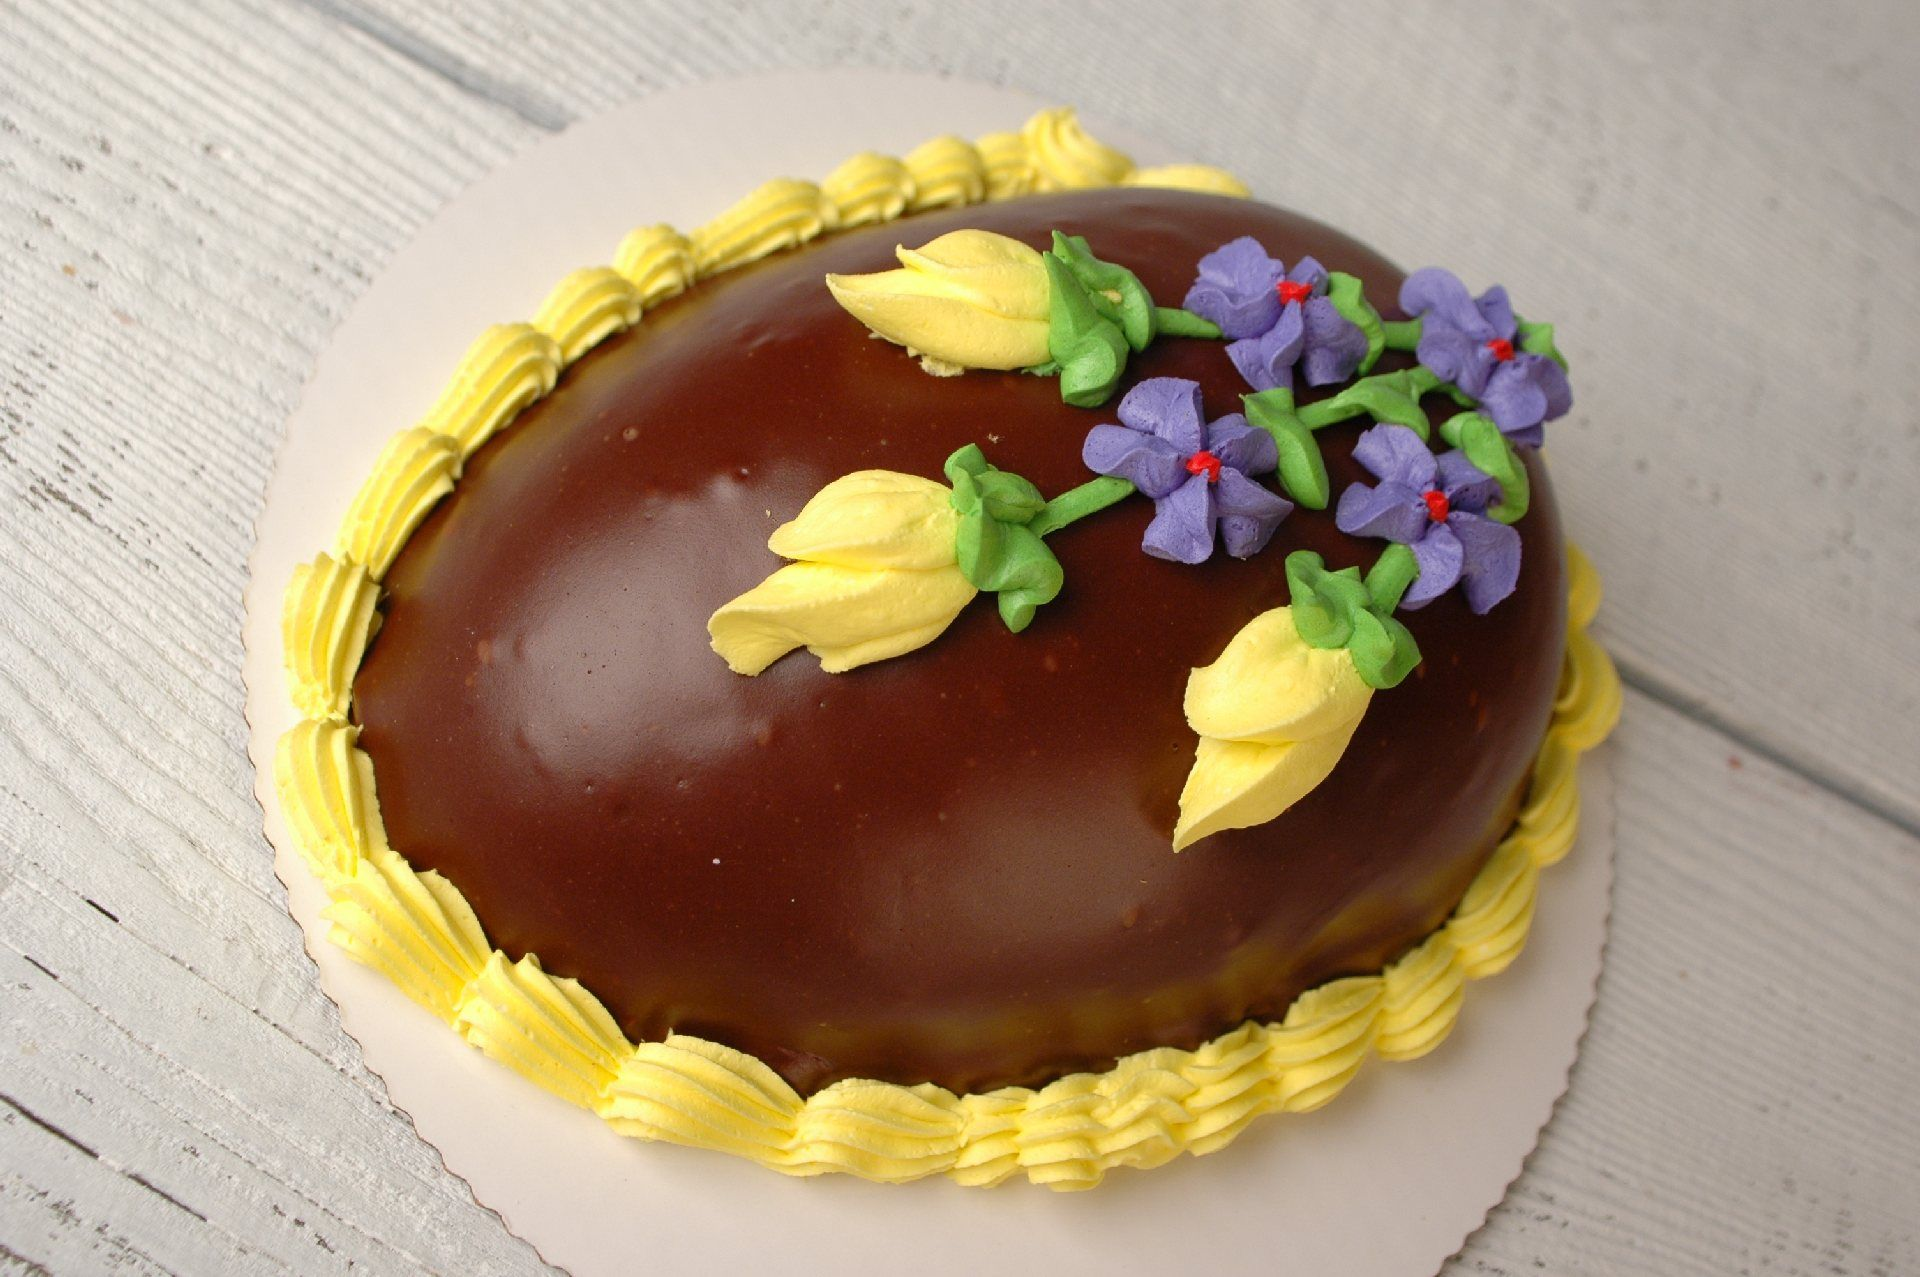 easter egg cakes Ukrops Homestyle Foods pies Pinterest